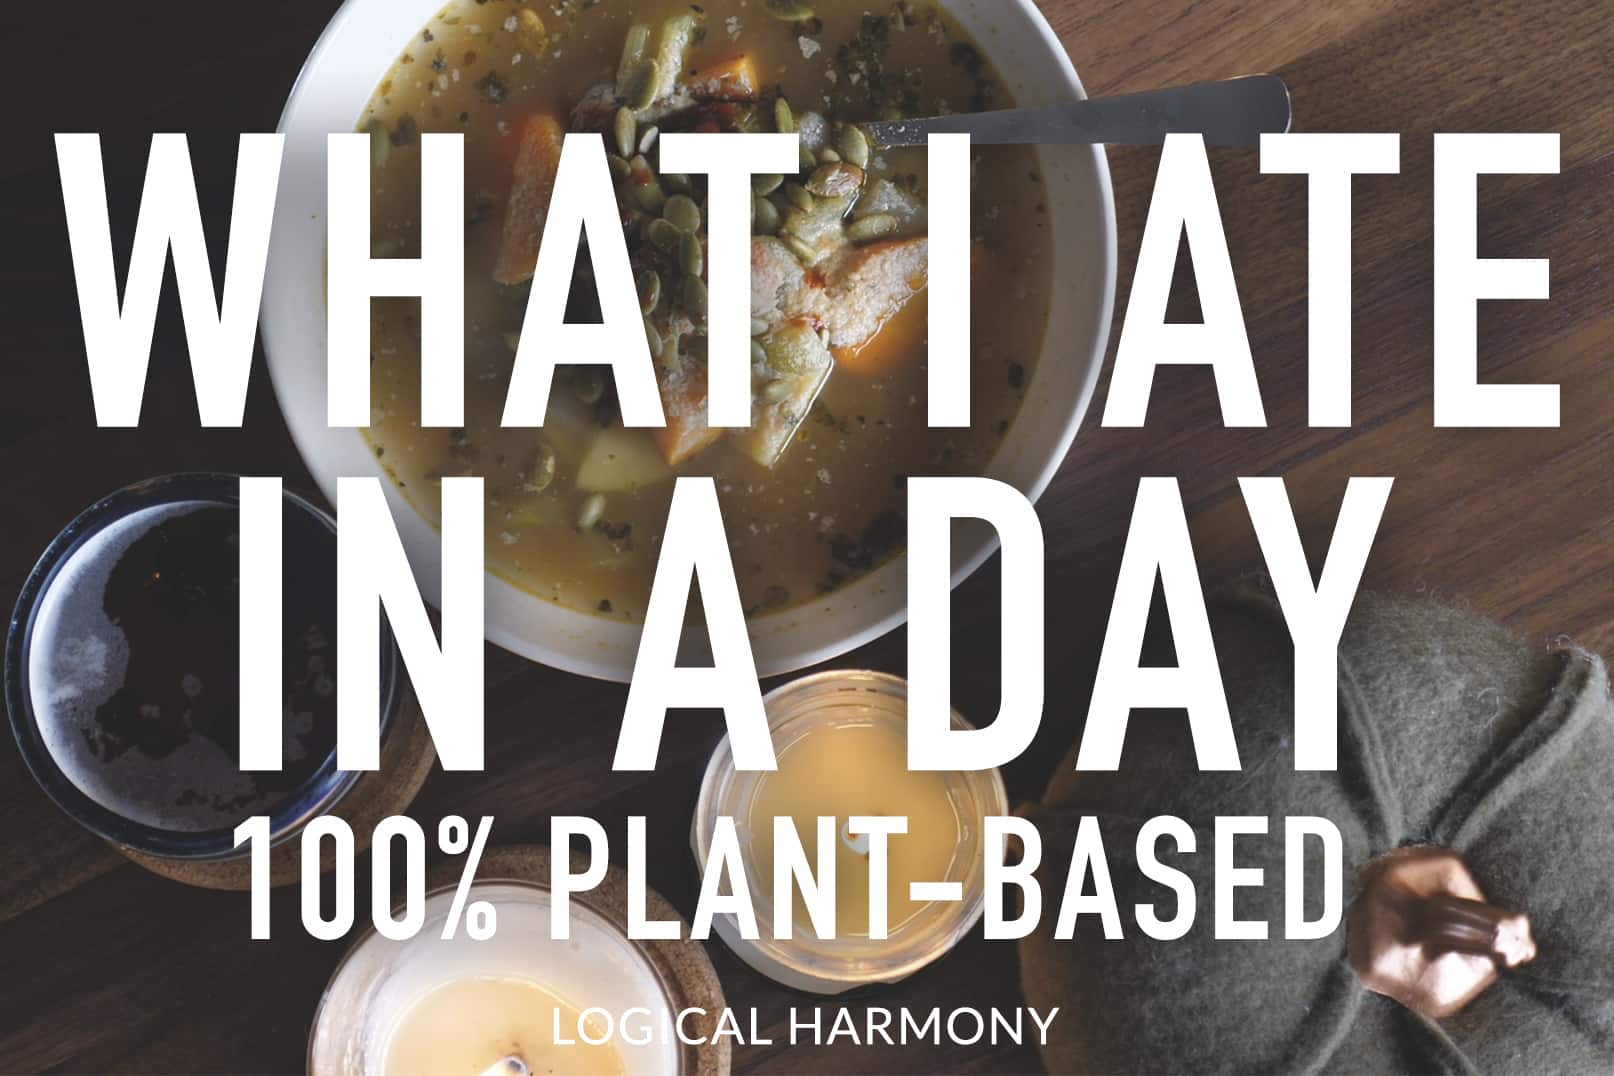 What I Eat in a Day Plant-Based ft. Purple Carrot